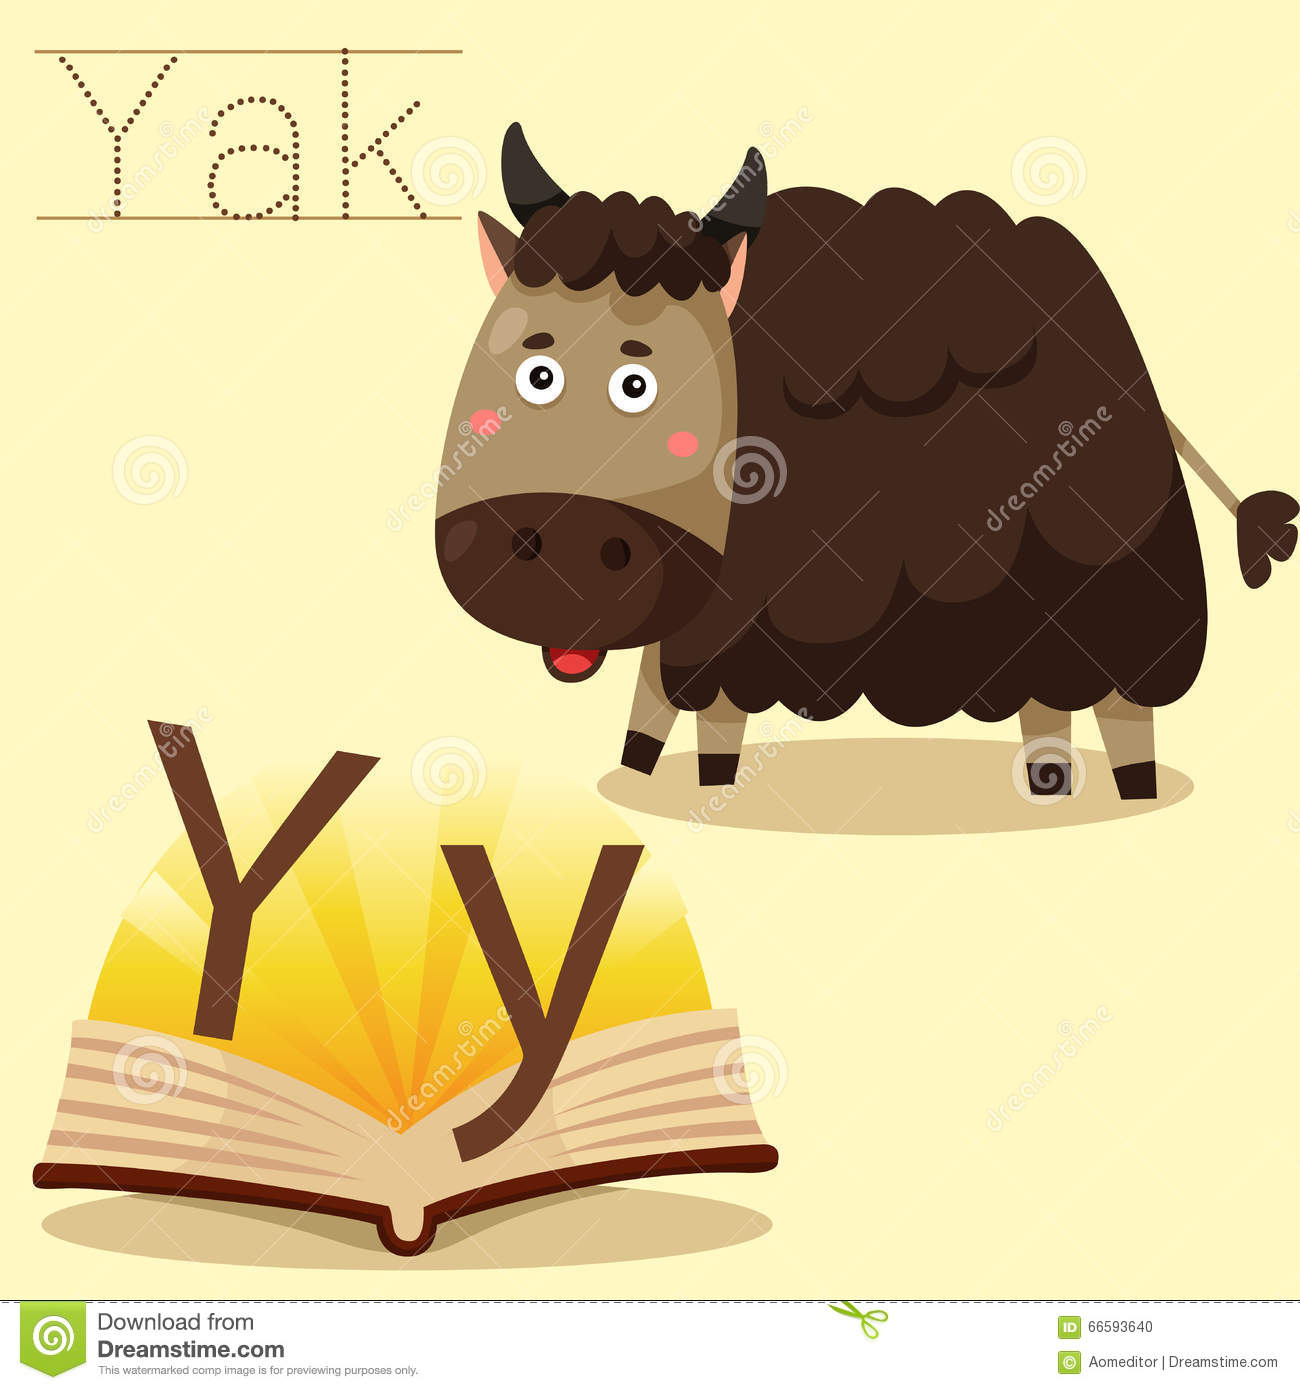 Illustrator Of Y For Yak Vocabulary Stock Vector